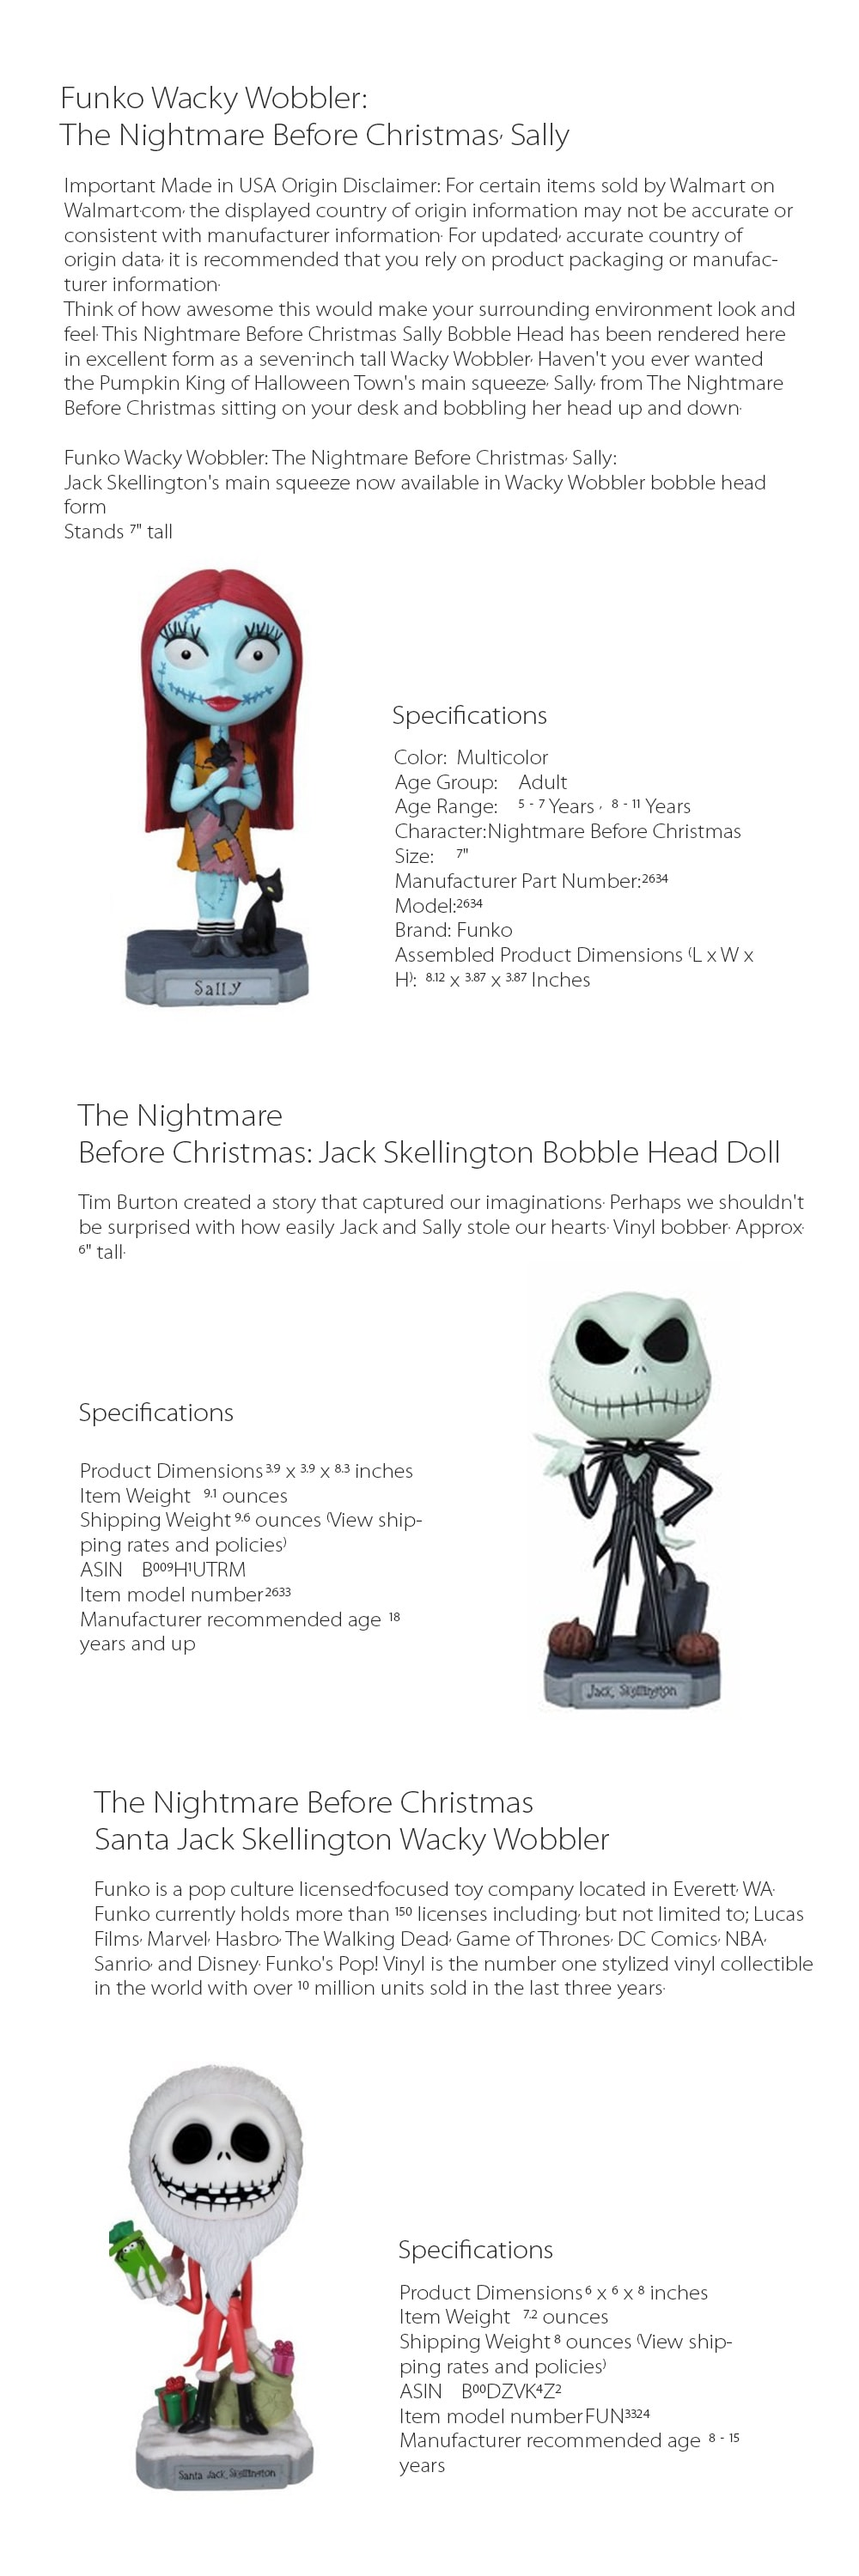 The Nightmare Before Christmas - Wobbler Great Christmas Gifts